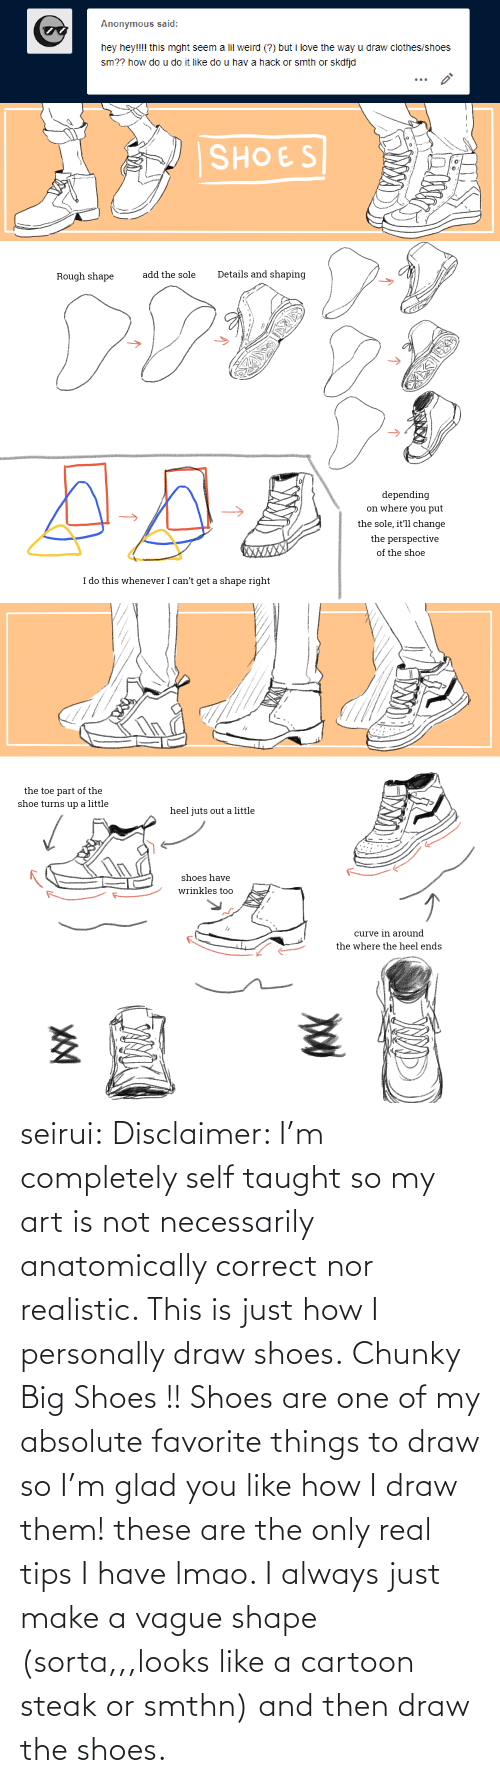 details: Anonymous said:  hey hey!!!! this mght seem a lil weird (?) but i love the way u draw clothes/shoes  sm?? how do u do it like do u hav a hack or smth or skdfjd   SHOES  Details and shaping  add the sole  Rough shape  depending  on where you put  the sole, it'll change  the perspective  XWXXX  of the shoe  I do this whenever I can't get a shape right   the toe part of the  shoe turns up a little  heel juts out a little  shoes have  wrinkles too  curve in around  the where the heel ends seirui: Disclaimer: I'm completely self taught so my art is not necessarily anatomically correct nor realistic. This is just how I personally draw shoes. Chunky Big Shoes !! Shoes are one of my absolute favorite things to draw so I'm glad you like how I draw them! these are the only real tips I have lmao. I always just make a vague shape (sorta,,,looks like a cartoon steak or smthn) and then draw the shoes.